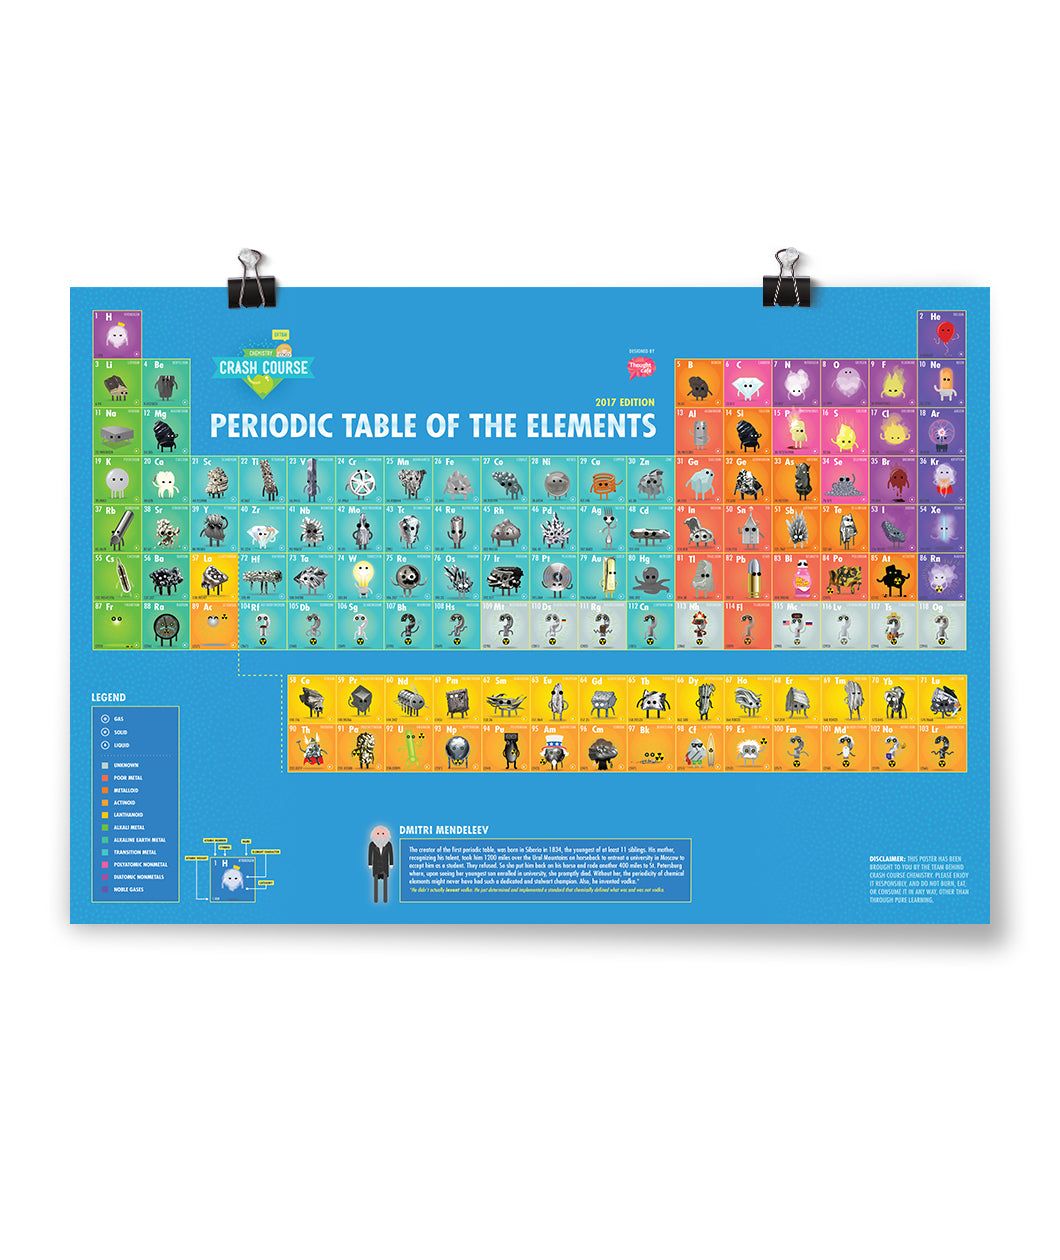 Periodic Table   Mystery Elements Worksheet   Extra Credit   Daily besides Periodic Table Murder Mystery  Atoms and Elements by erhgiez additionally Periodic Table Mystery   Carolina further NEW PERIODIC TABLE MYSTERY WORKSHEET ANSWERS as well Meet 115  the Newest Element on the Periodic Table in addition CrashCourse Chemistry Periodic Table of the Elements – DFTBA in addition  likewise History of the Periodic Table   ppt download together with Name Date        Period furthermore Mystery Periodic Table together with Printable periodic table activities   Download them or print furthermore Mystery Periodic Table Worksheet further Mars Periodic Table Answers likewise Periodic Table Mystery   Carolina together with Periodic Table Trends Activity Worksheet   Livinghealthybulletin moreover . on mystery periodic table worksheet answers